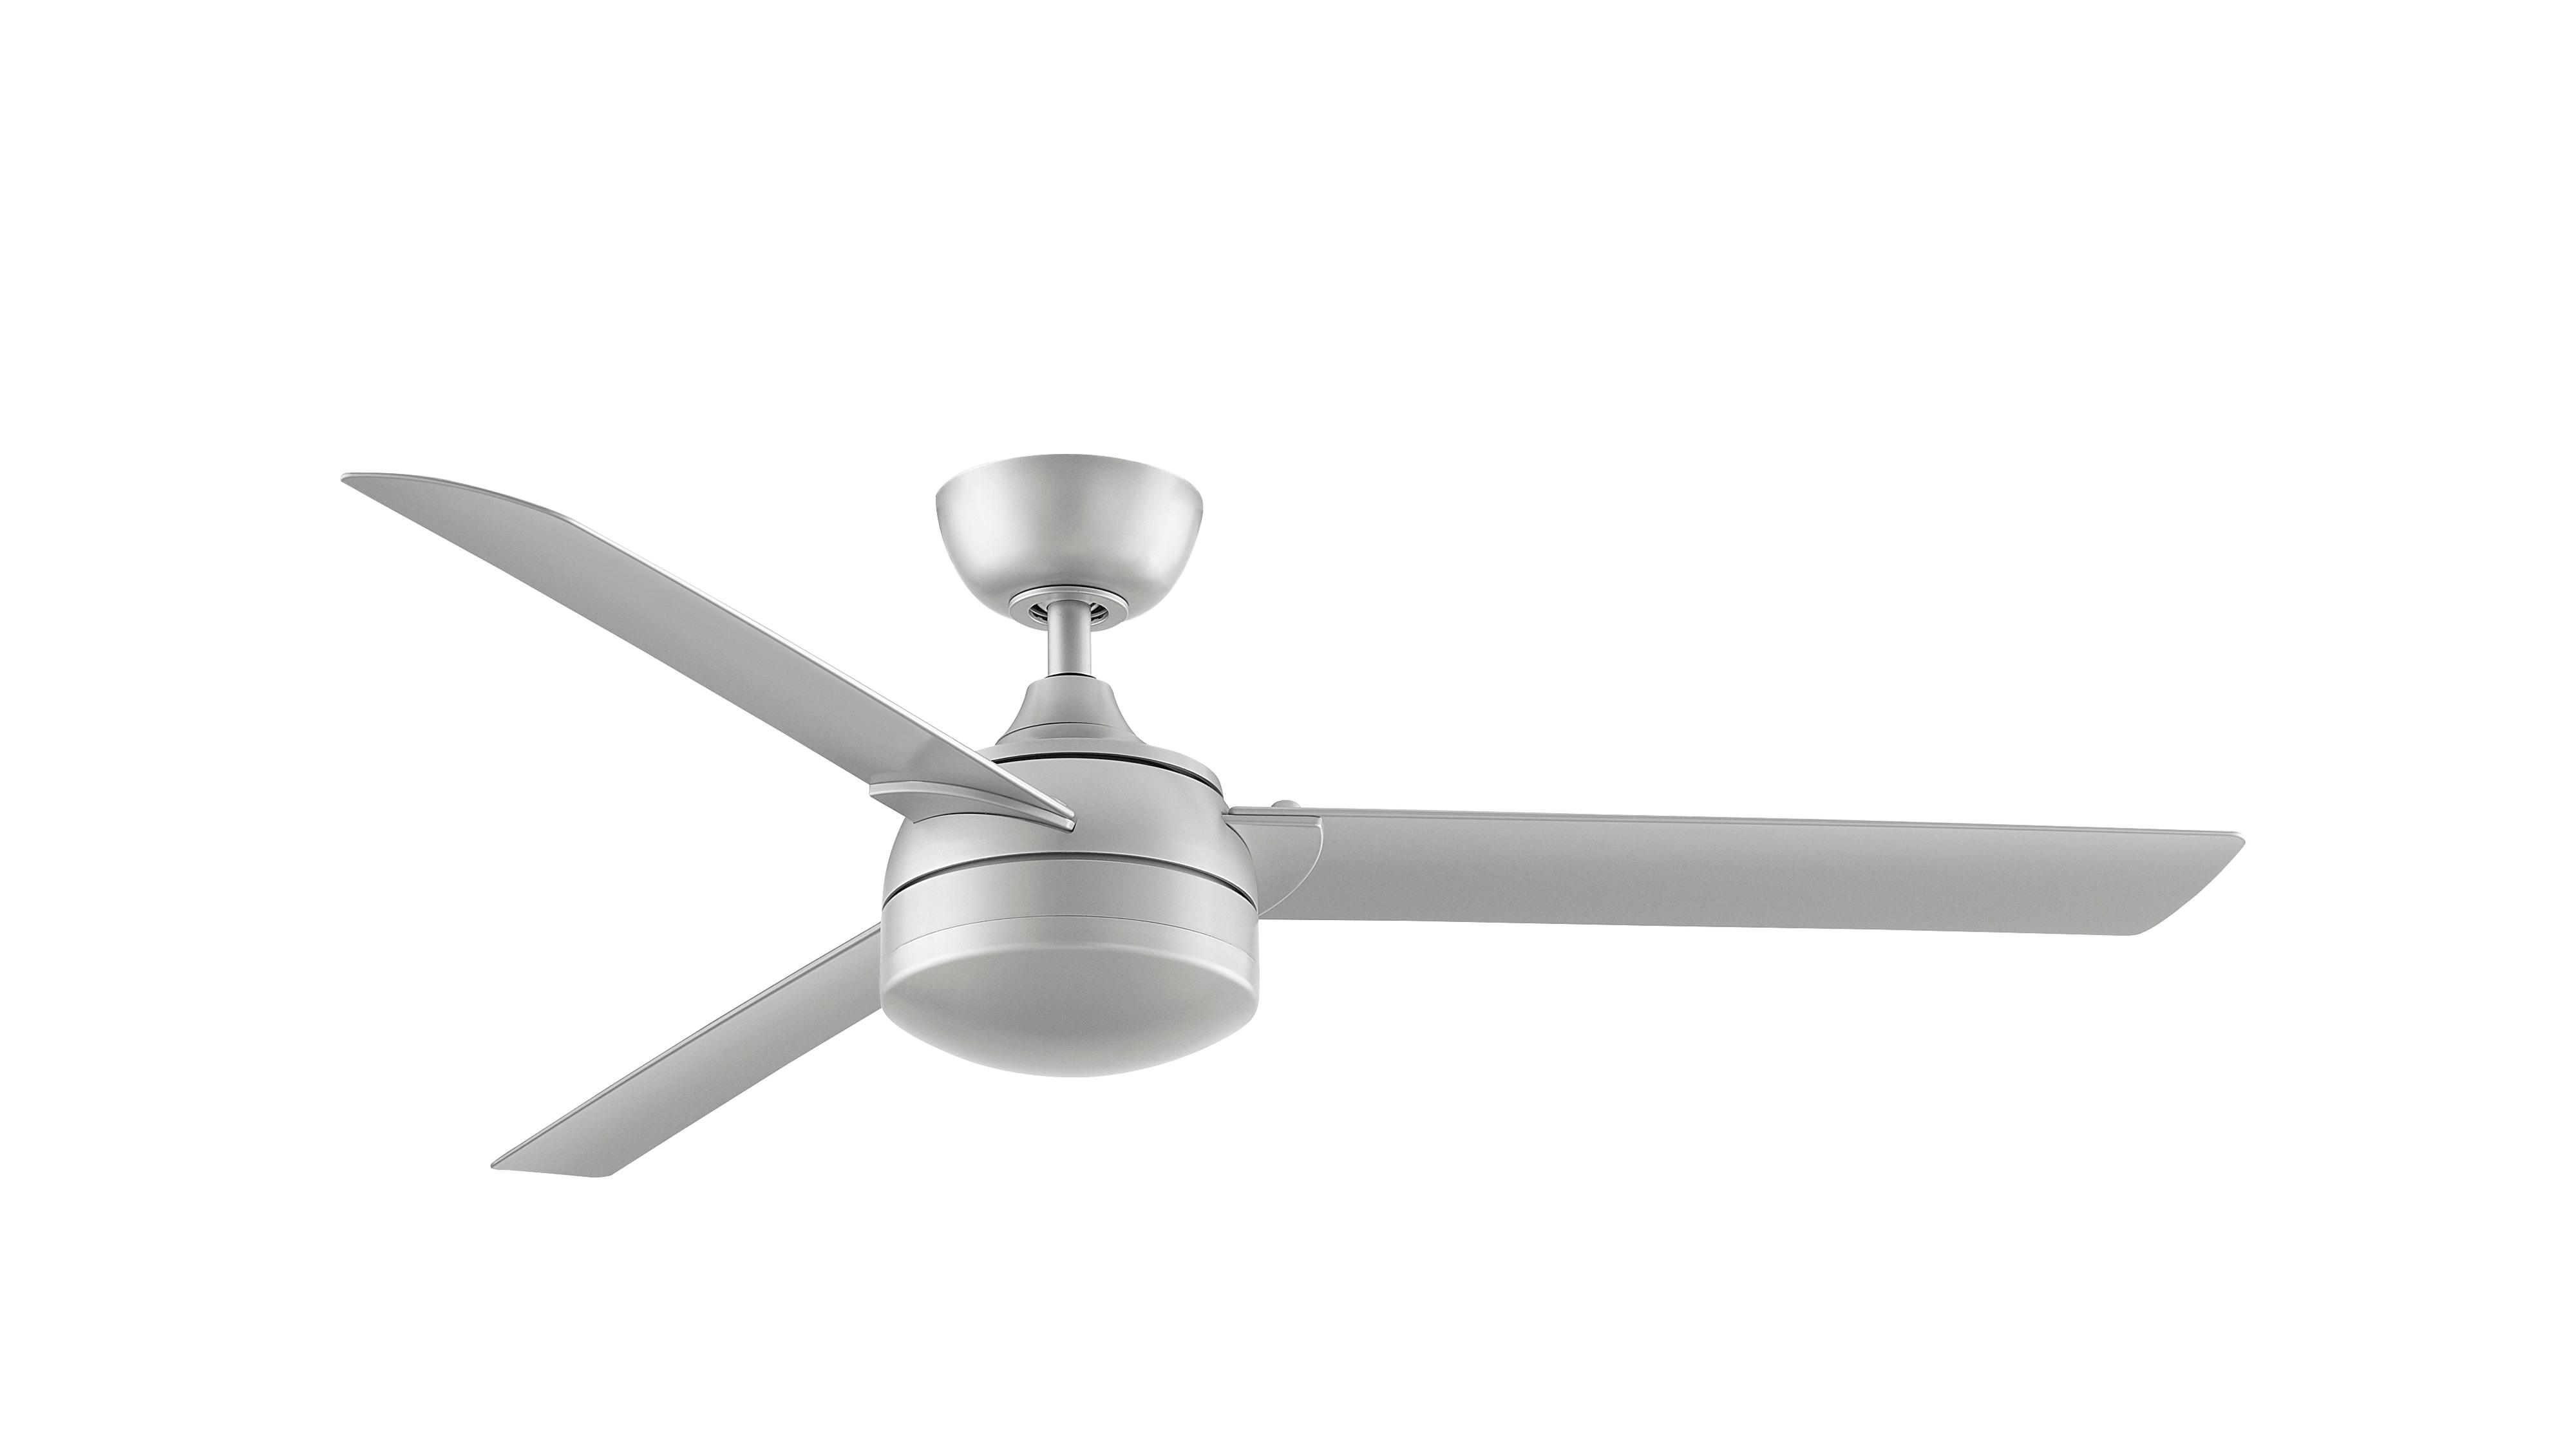 Outdoor Ceiling Fan Xeno Wet 142cm 56 Nickel With Led Home Commercial Heaters Ventilation Ceiling Fans Uk